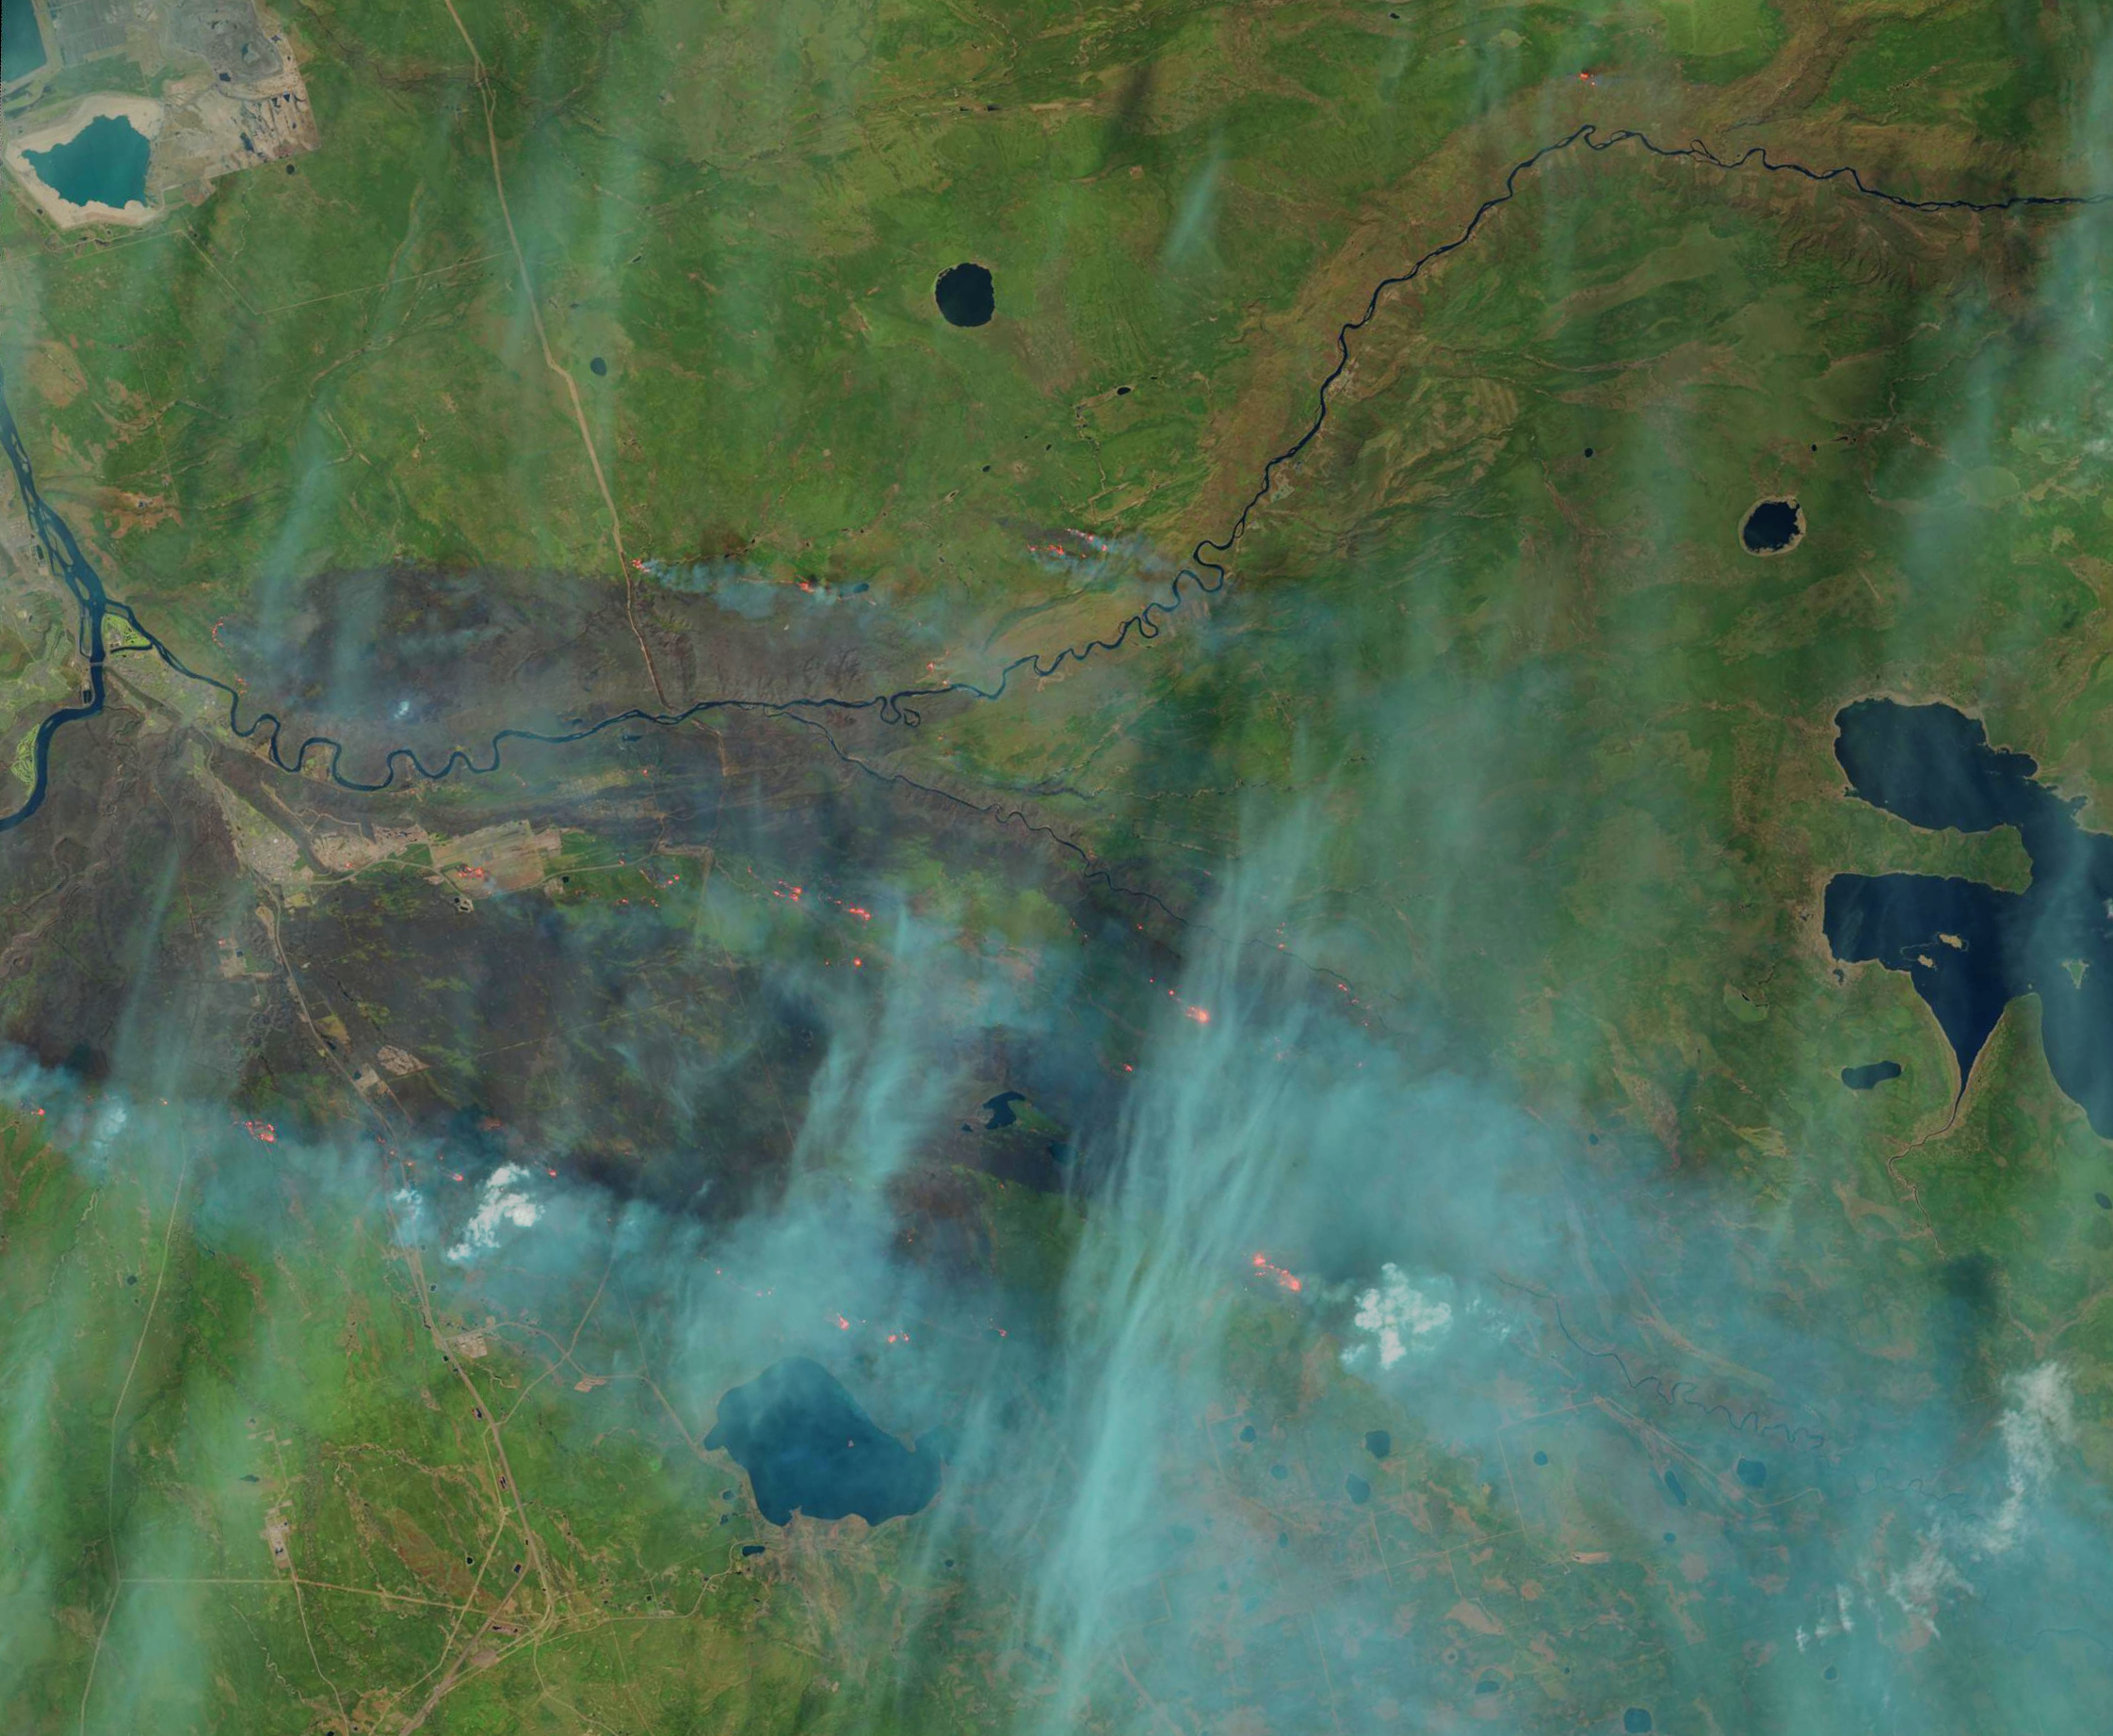 Landsat 6 - OLI - Fort Mc Murray - Alberta - Canada - Wil fires - Incendies - USGS